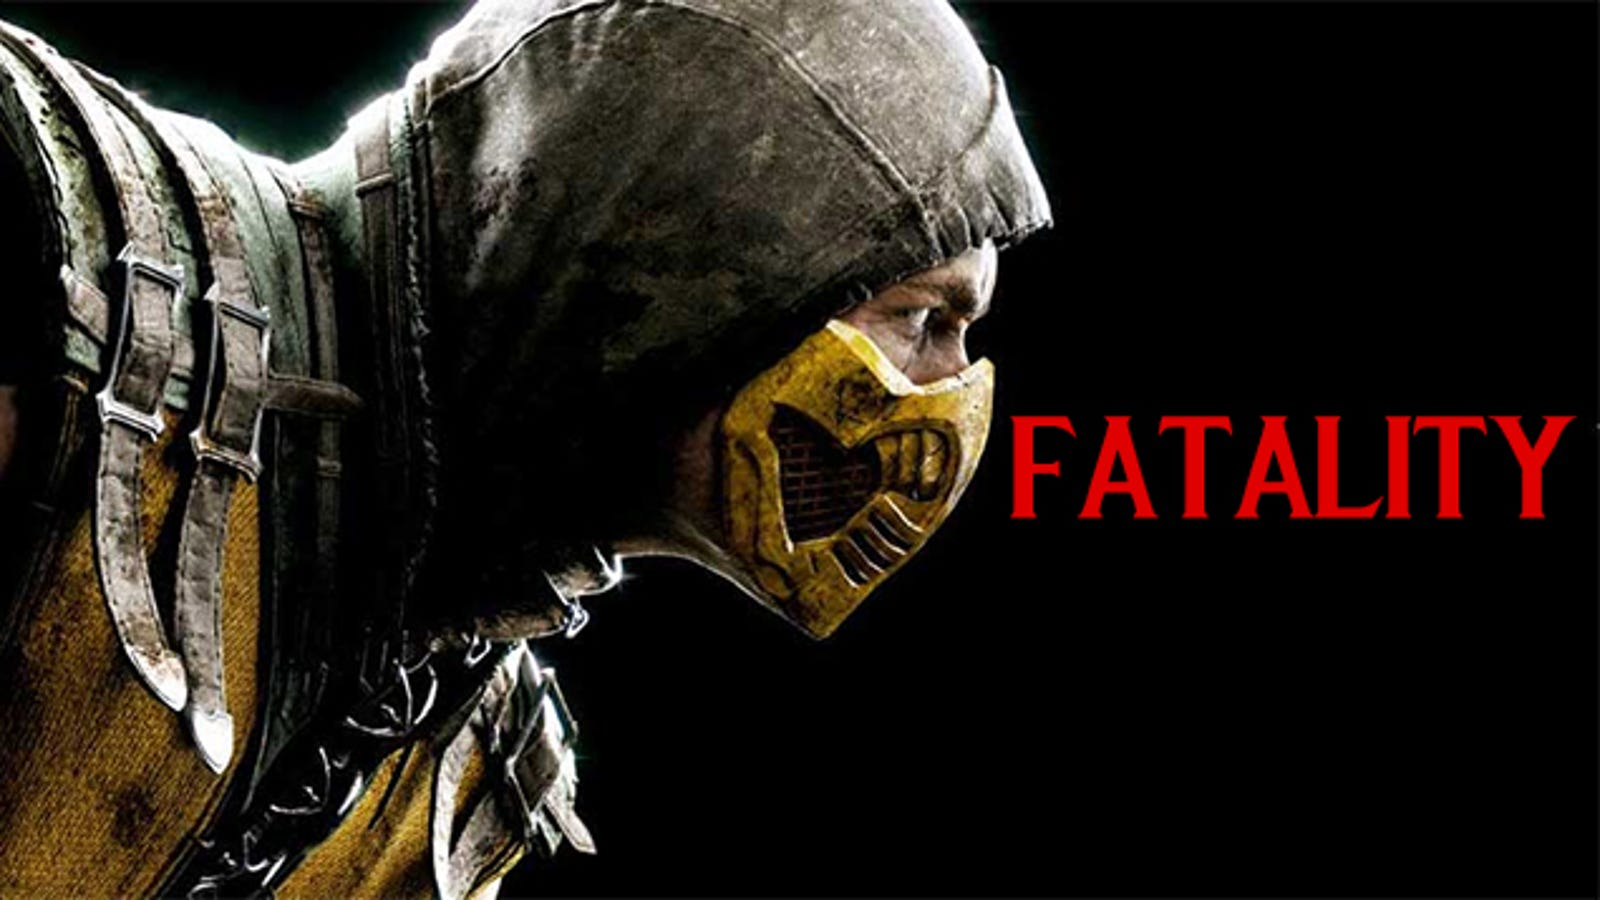 Mortal Kombat X For Xbox 360 And PS3 Officially Canceled